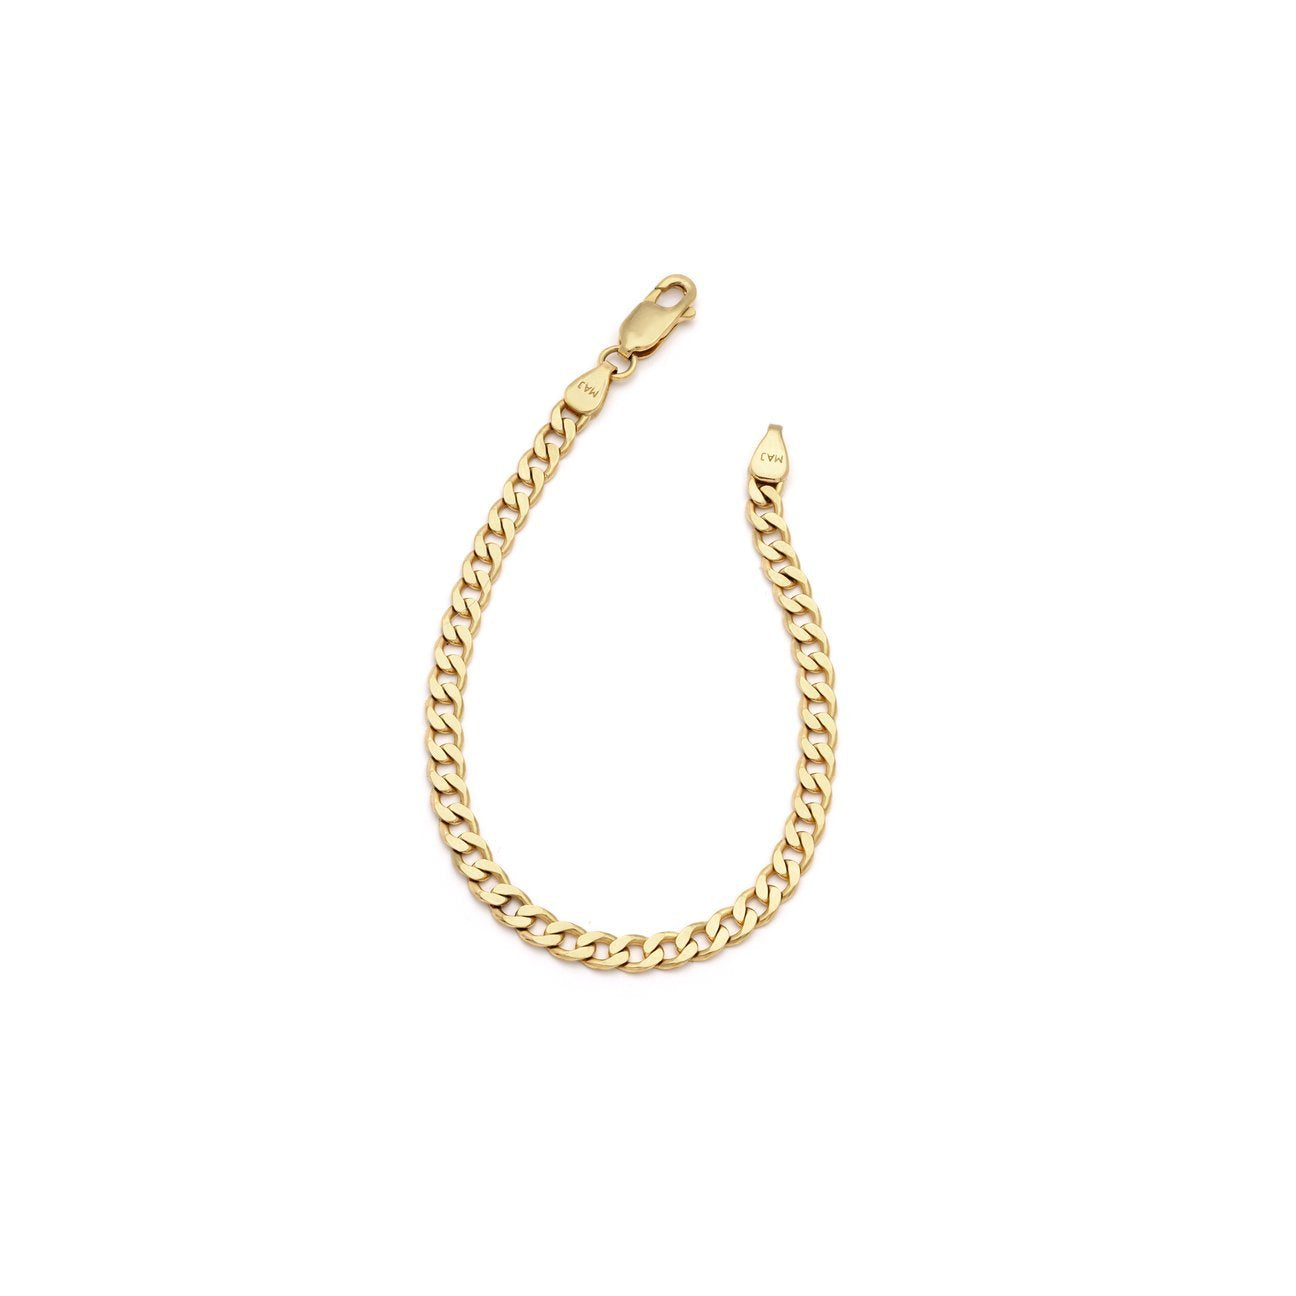 Thick Curb Chain Anklet - 10k Solid Gold